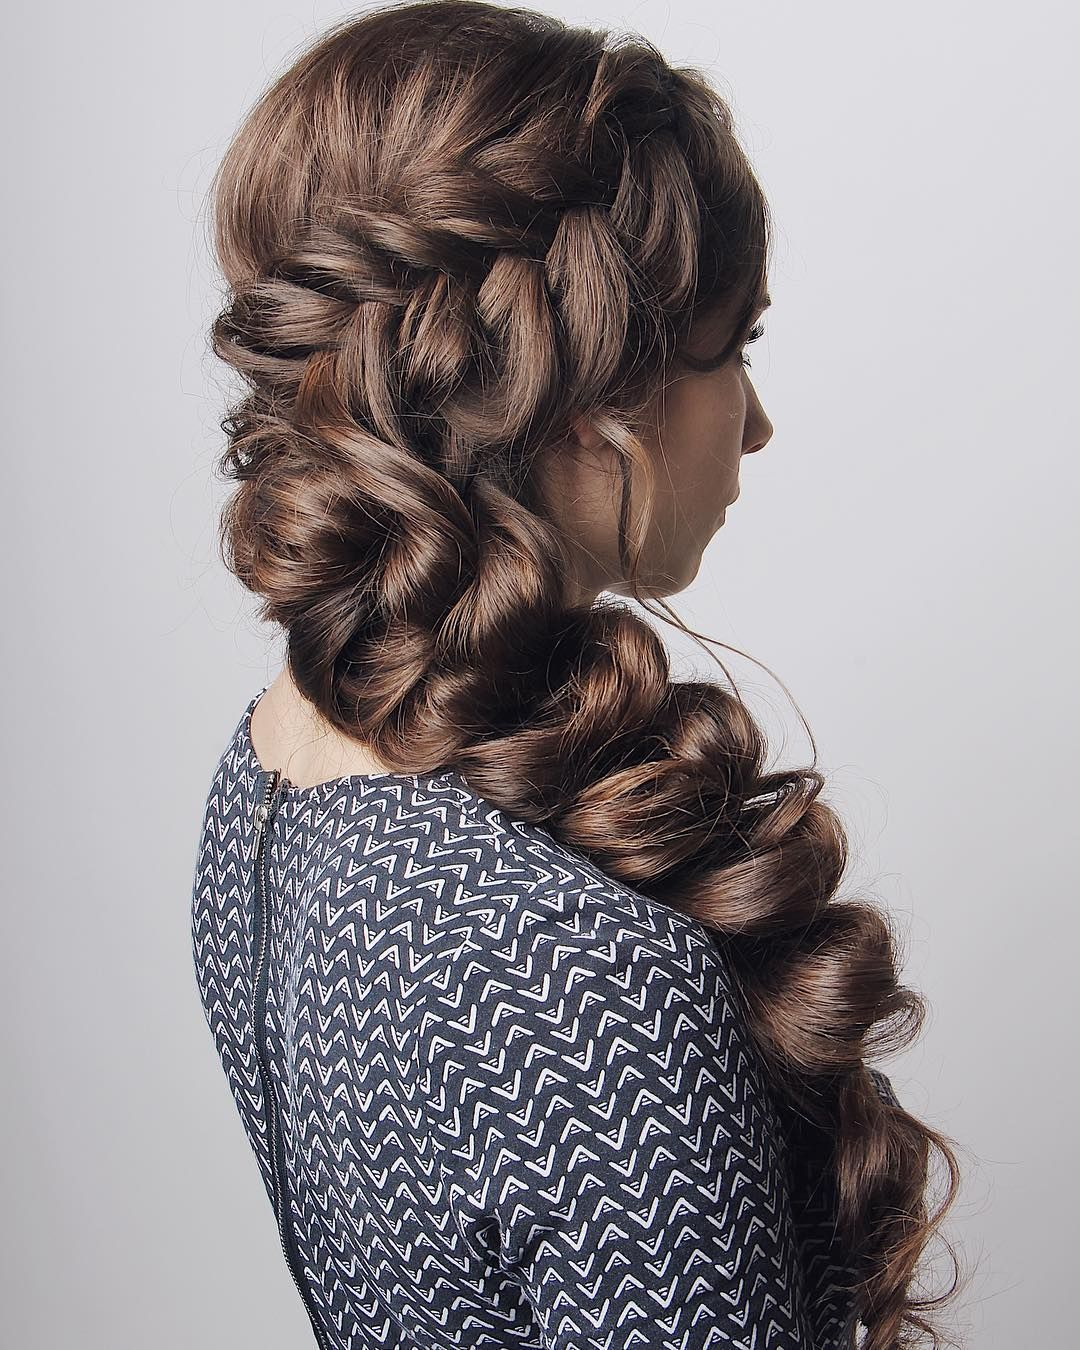 Hairstyle Inspiration : Blush and Mane Hair Artist